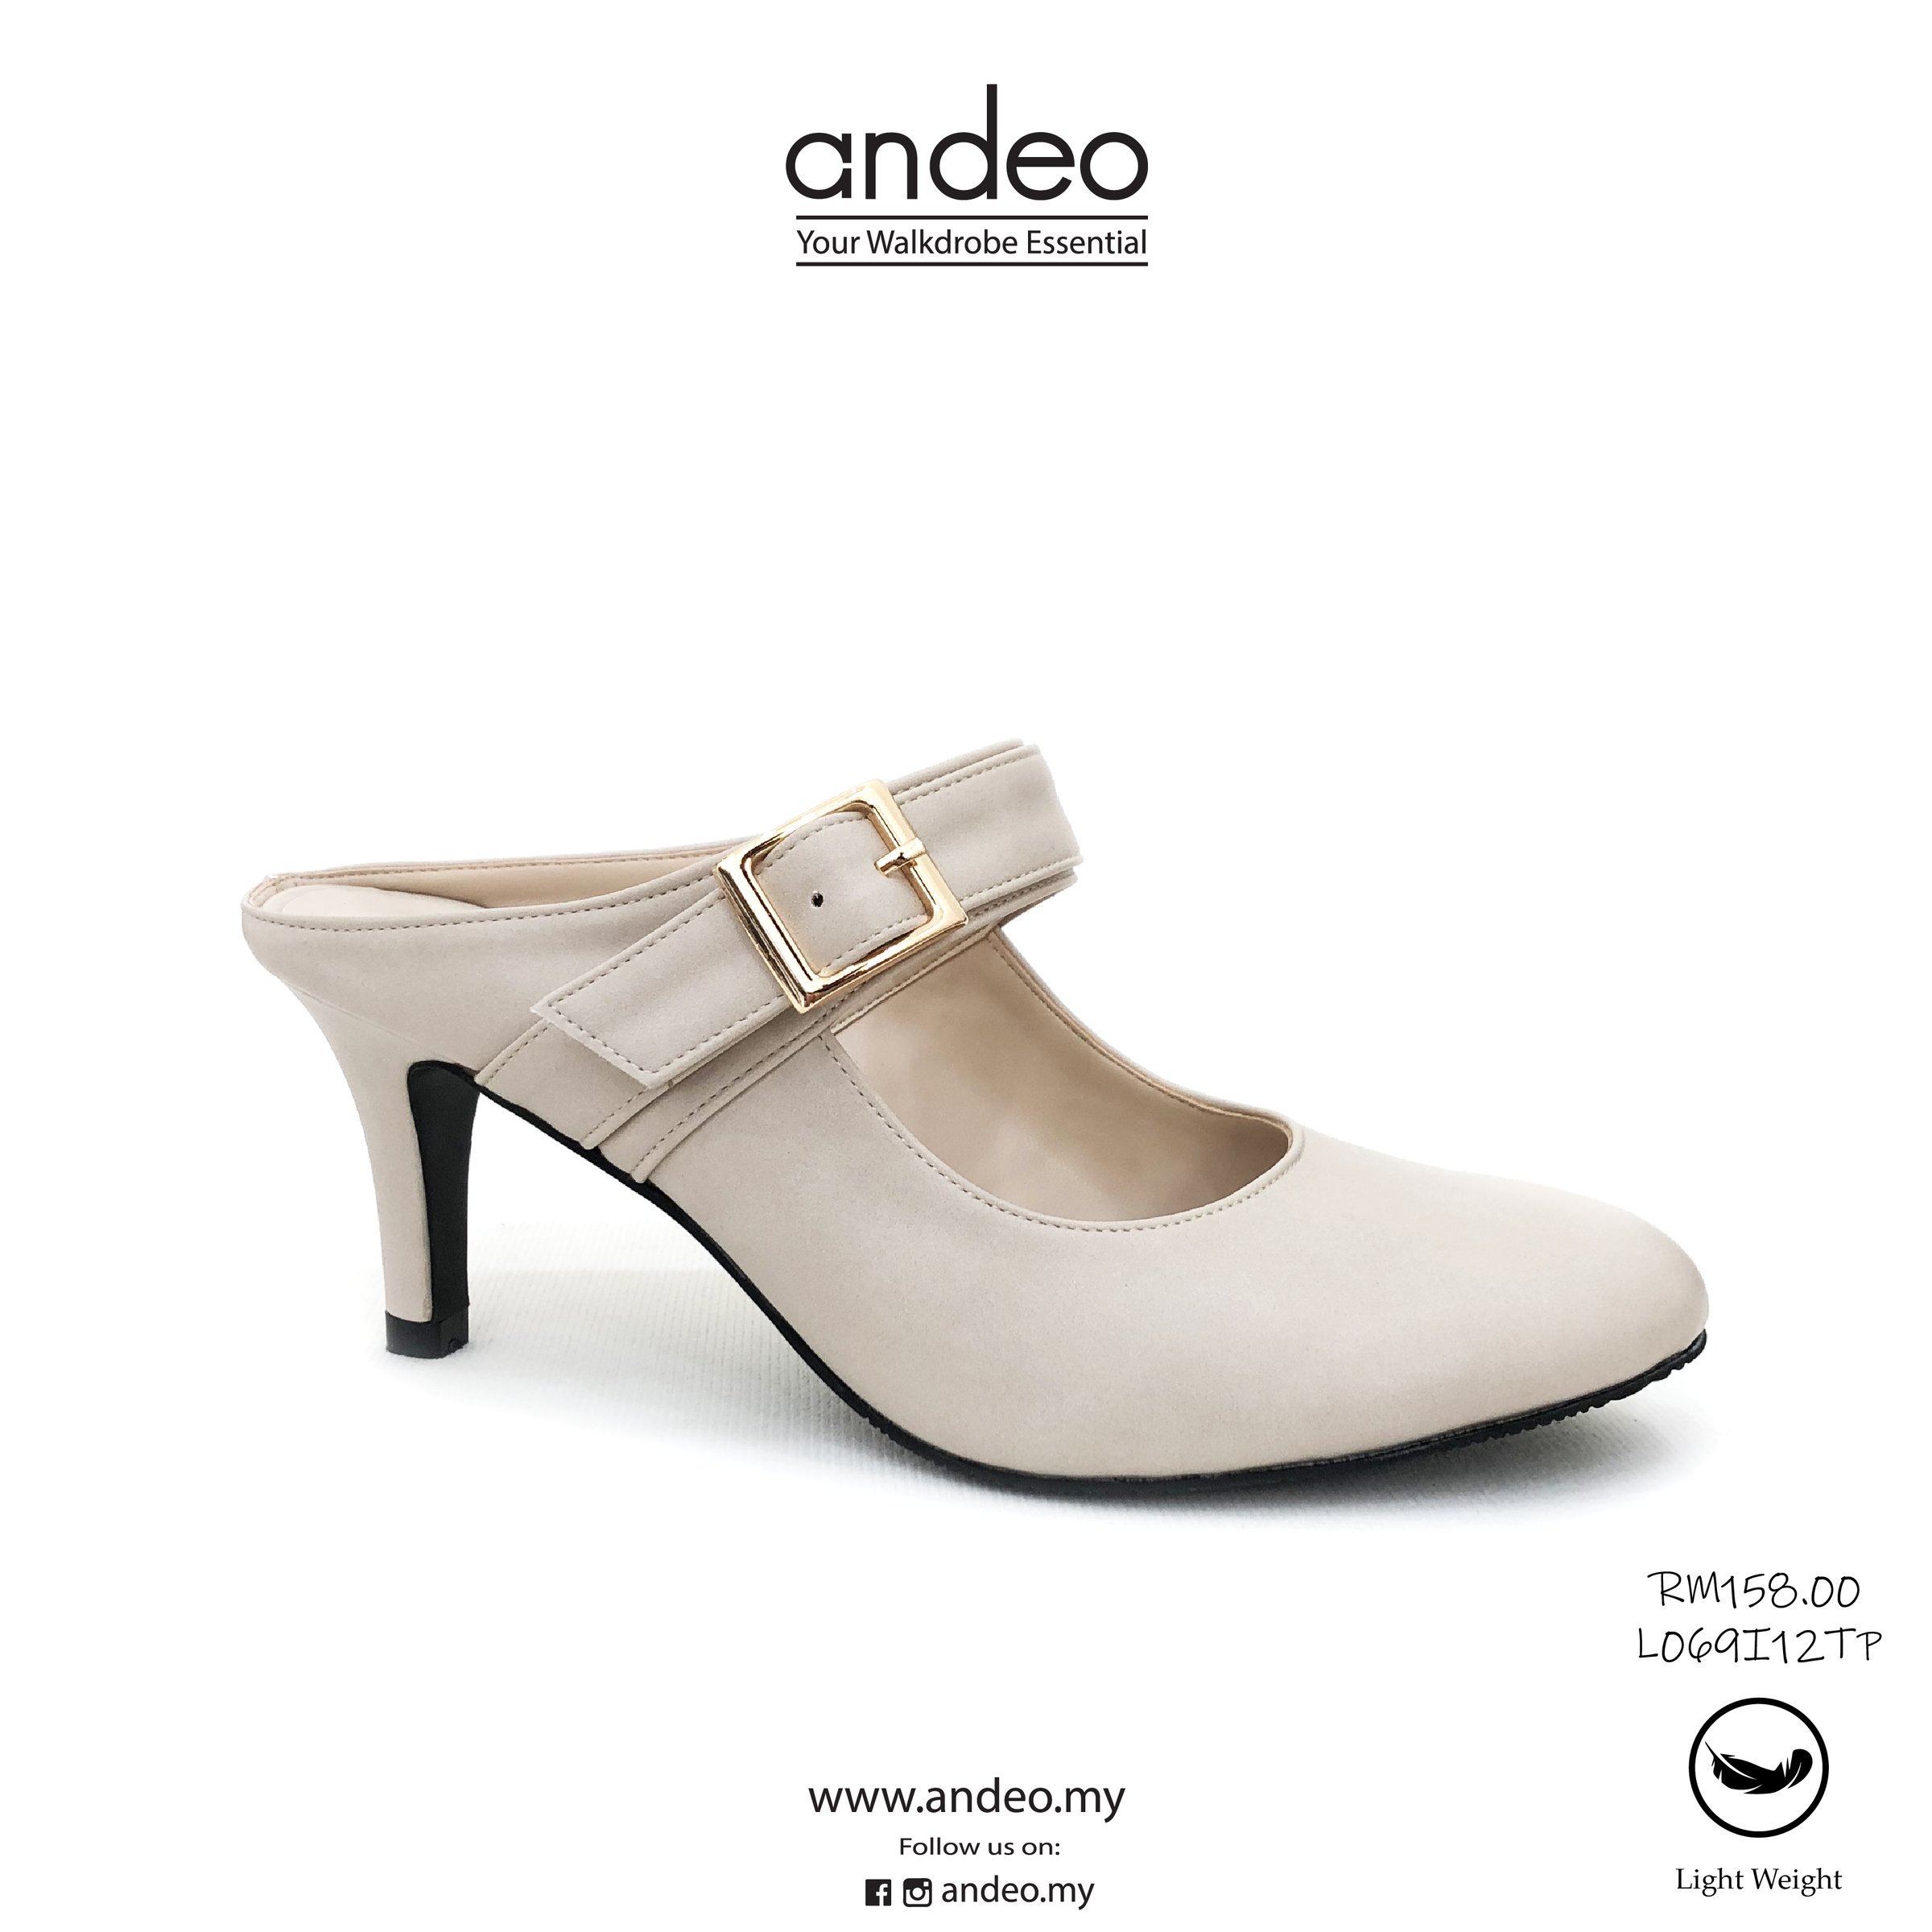 ANDEO FB PRODUCT L069I12-14.png